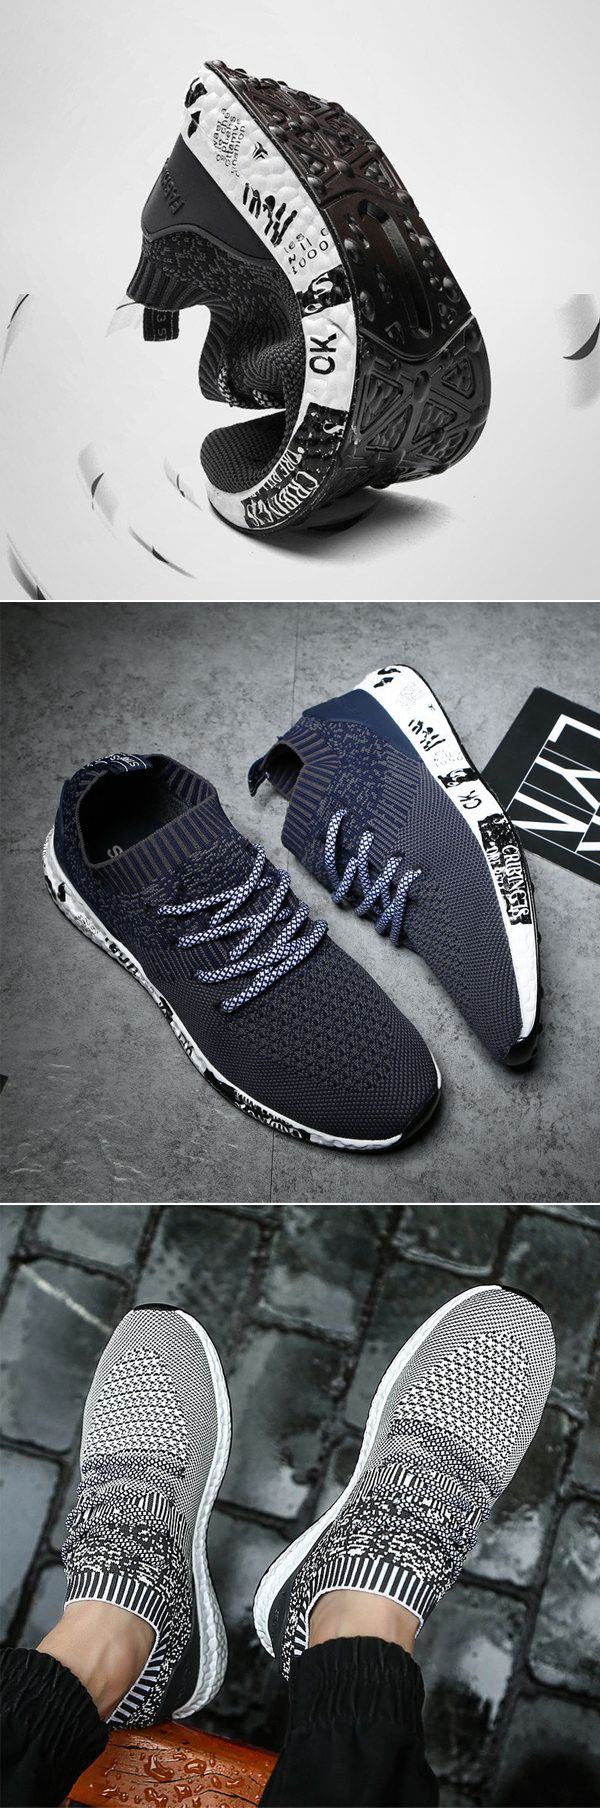 US$38.25#Men Elastic Flyknit Fabric Light Running Sneakers Lace Up Casual Sneakers